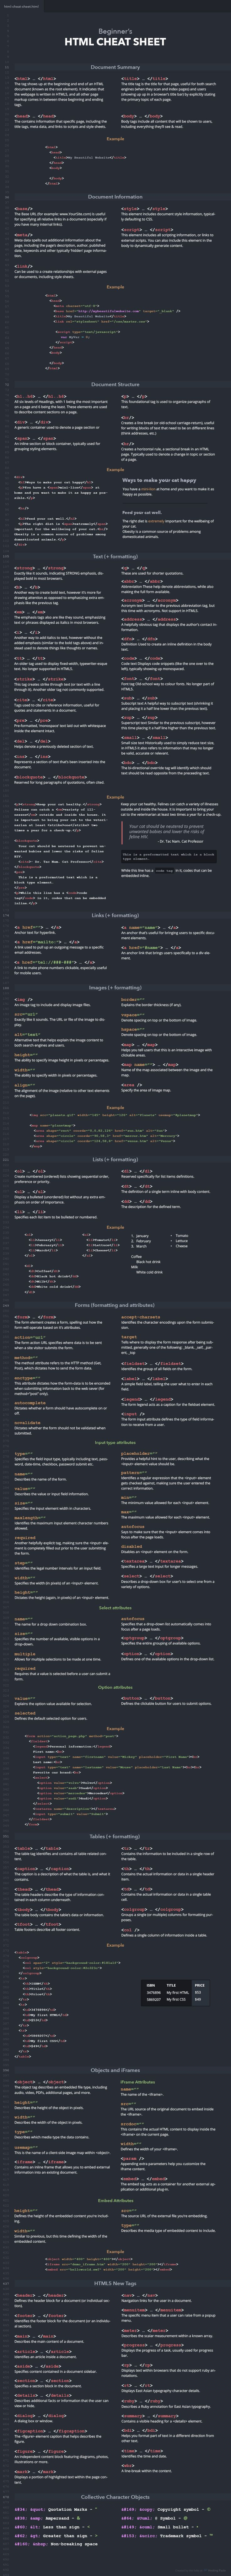 HTML cheat sheet gives you a quick reference for commonly used tags,